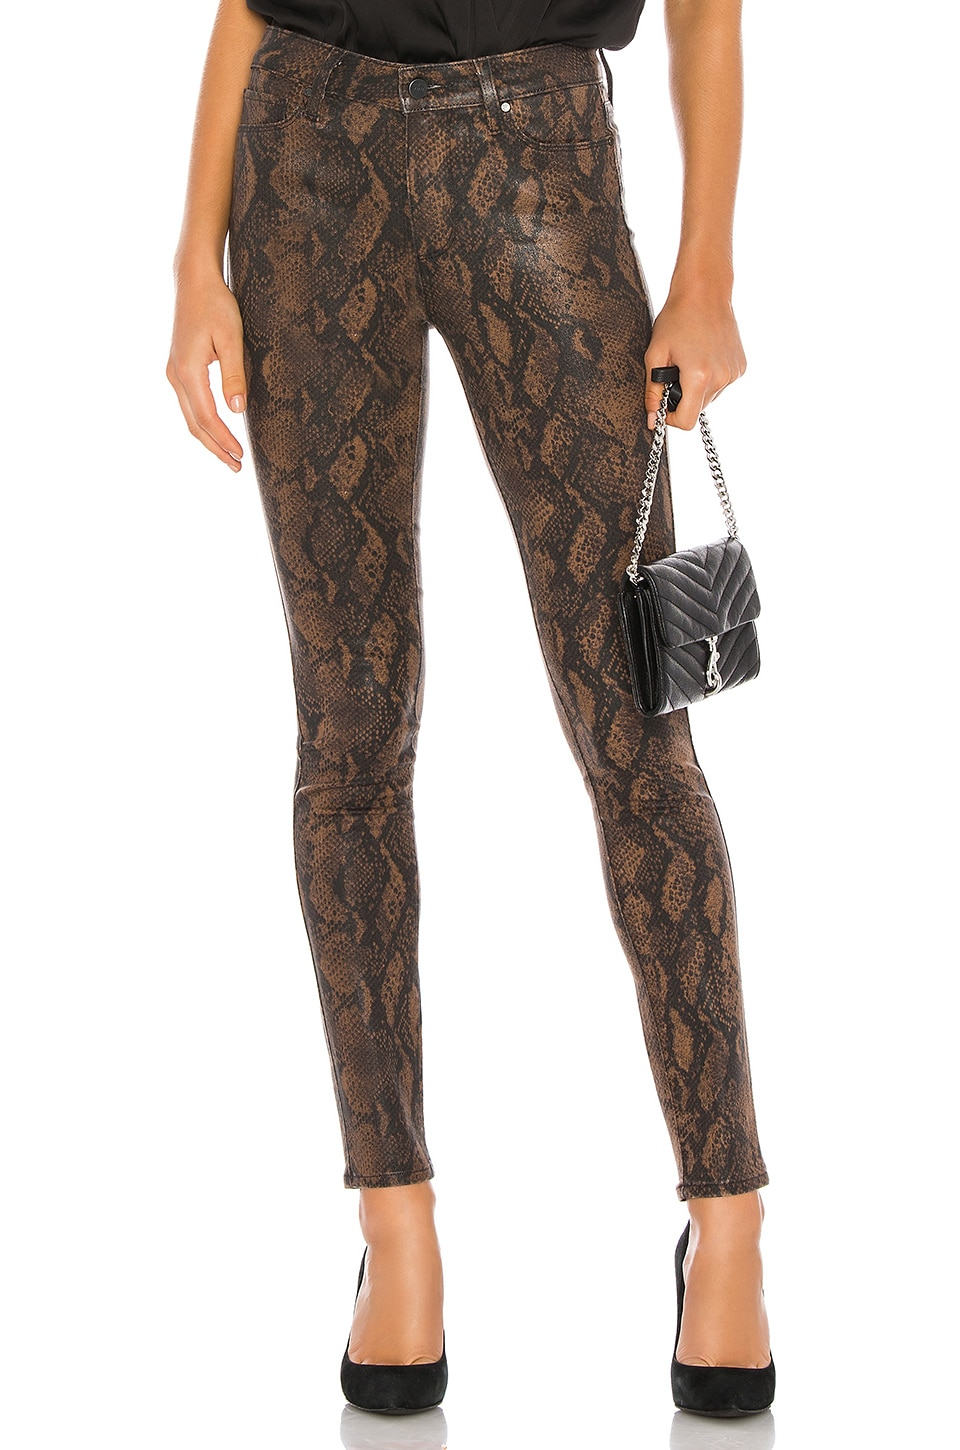 PAIGE Hoxton Ultra Skinny in Coated Brown Snake